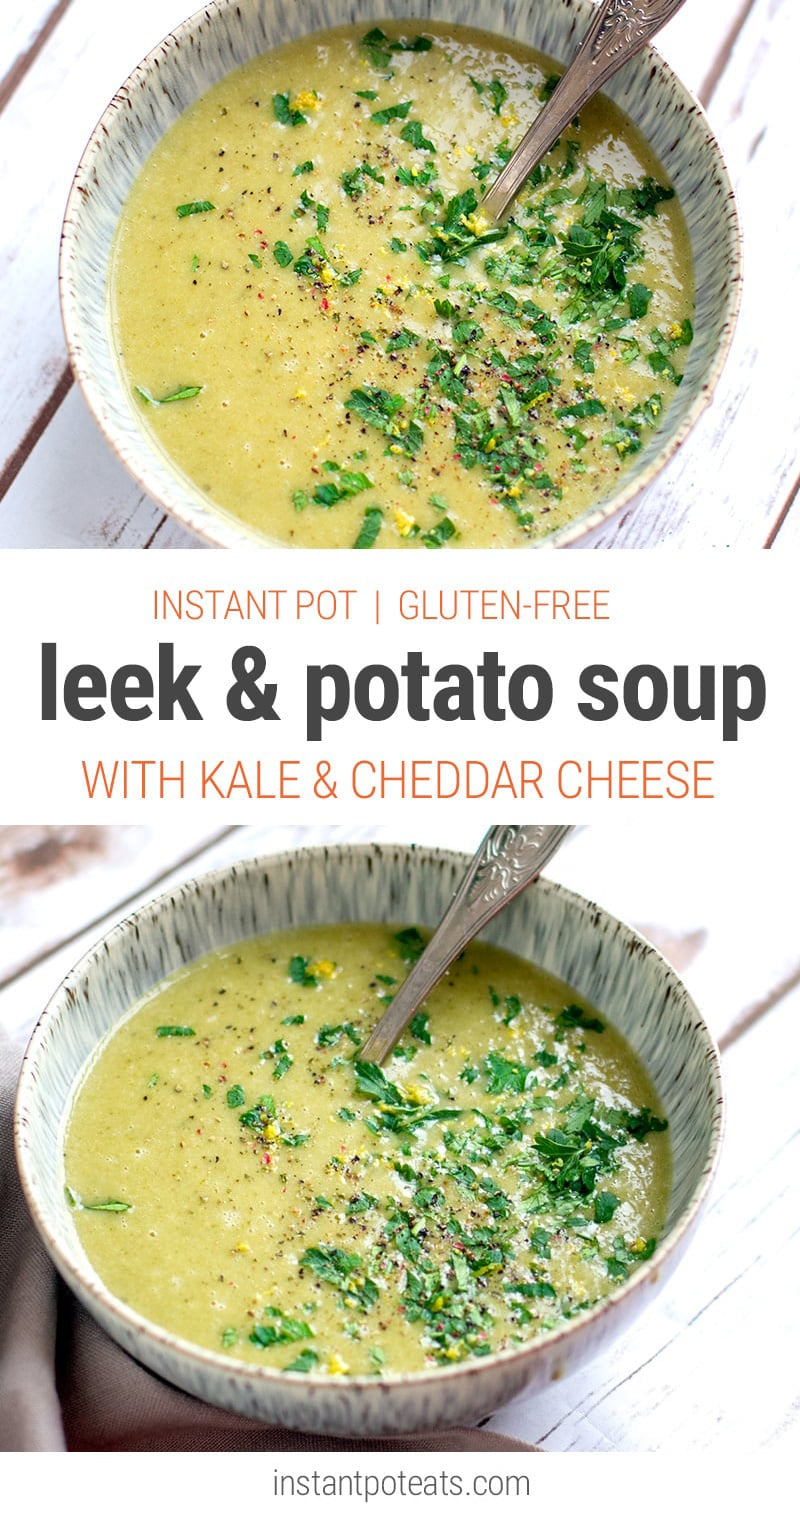 Leek, Kale & Potato Soup (Instant Pot, Gluten-Free Recipe)